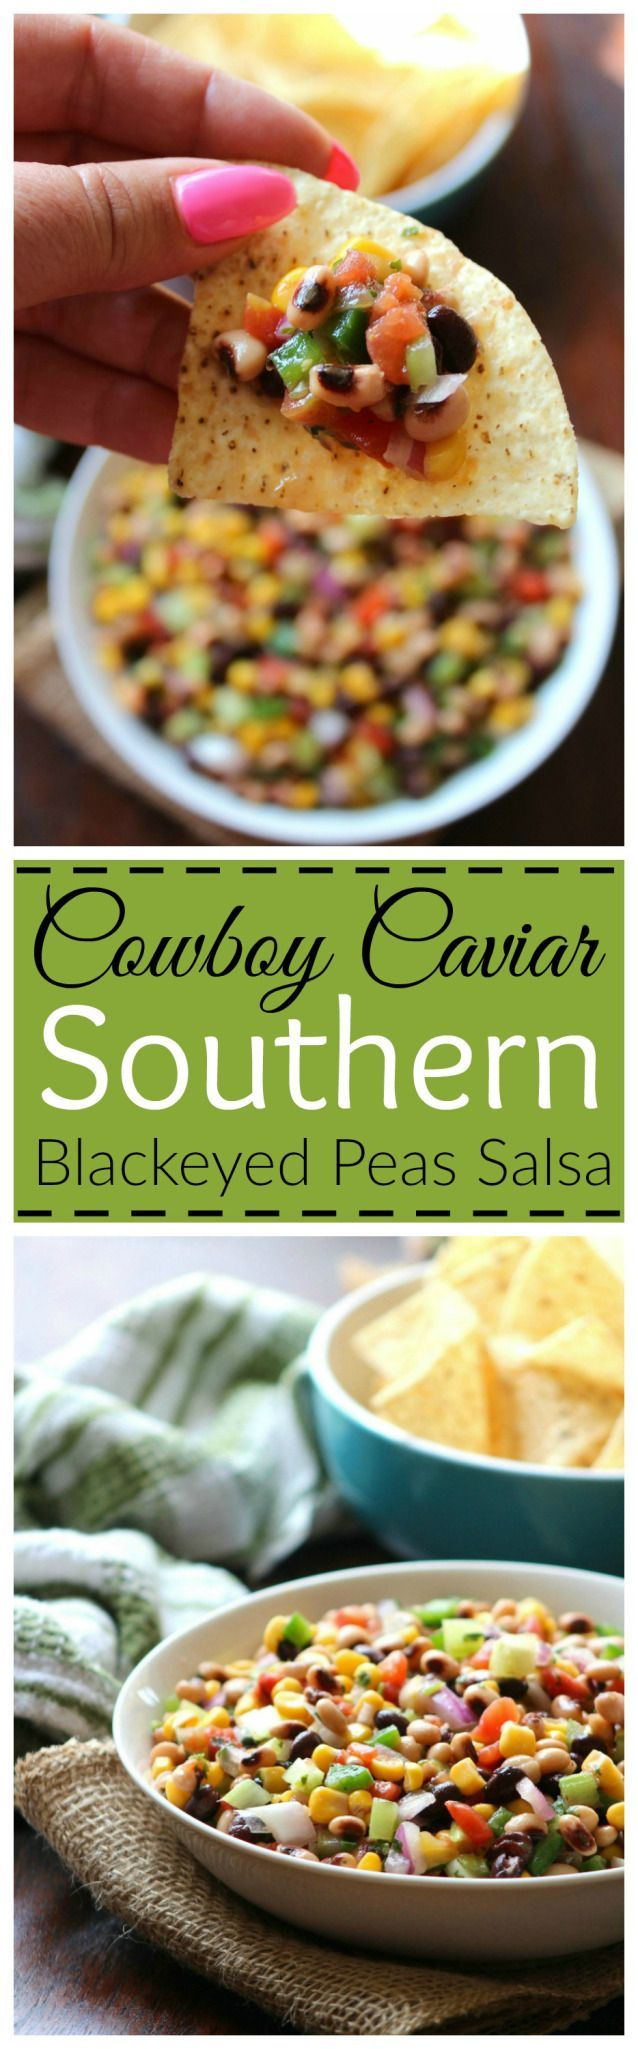 Cowboy Caviar {black-eyed Pea Salsa} aka Texas Caviar is the delicious Southern cousin of Mexican Black Bean Salsa made with black-eyed peas, sweet corn, diced red plum tomatoes, chopped spicy jala…